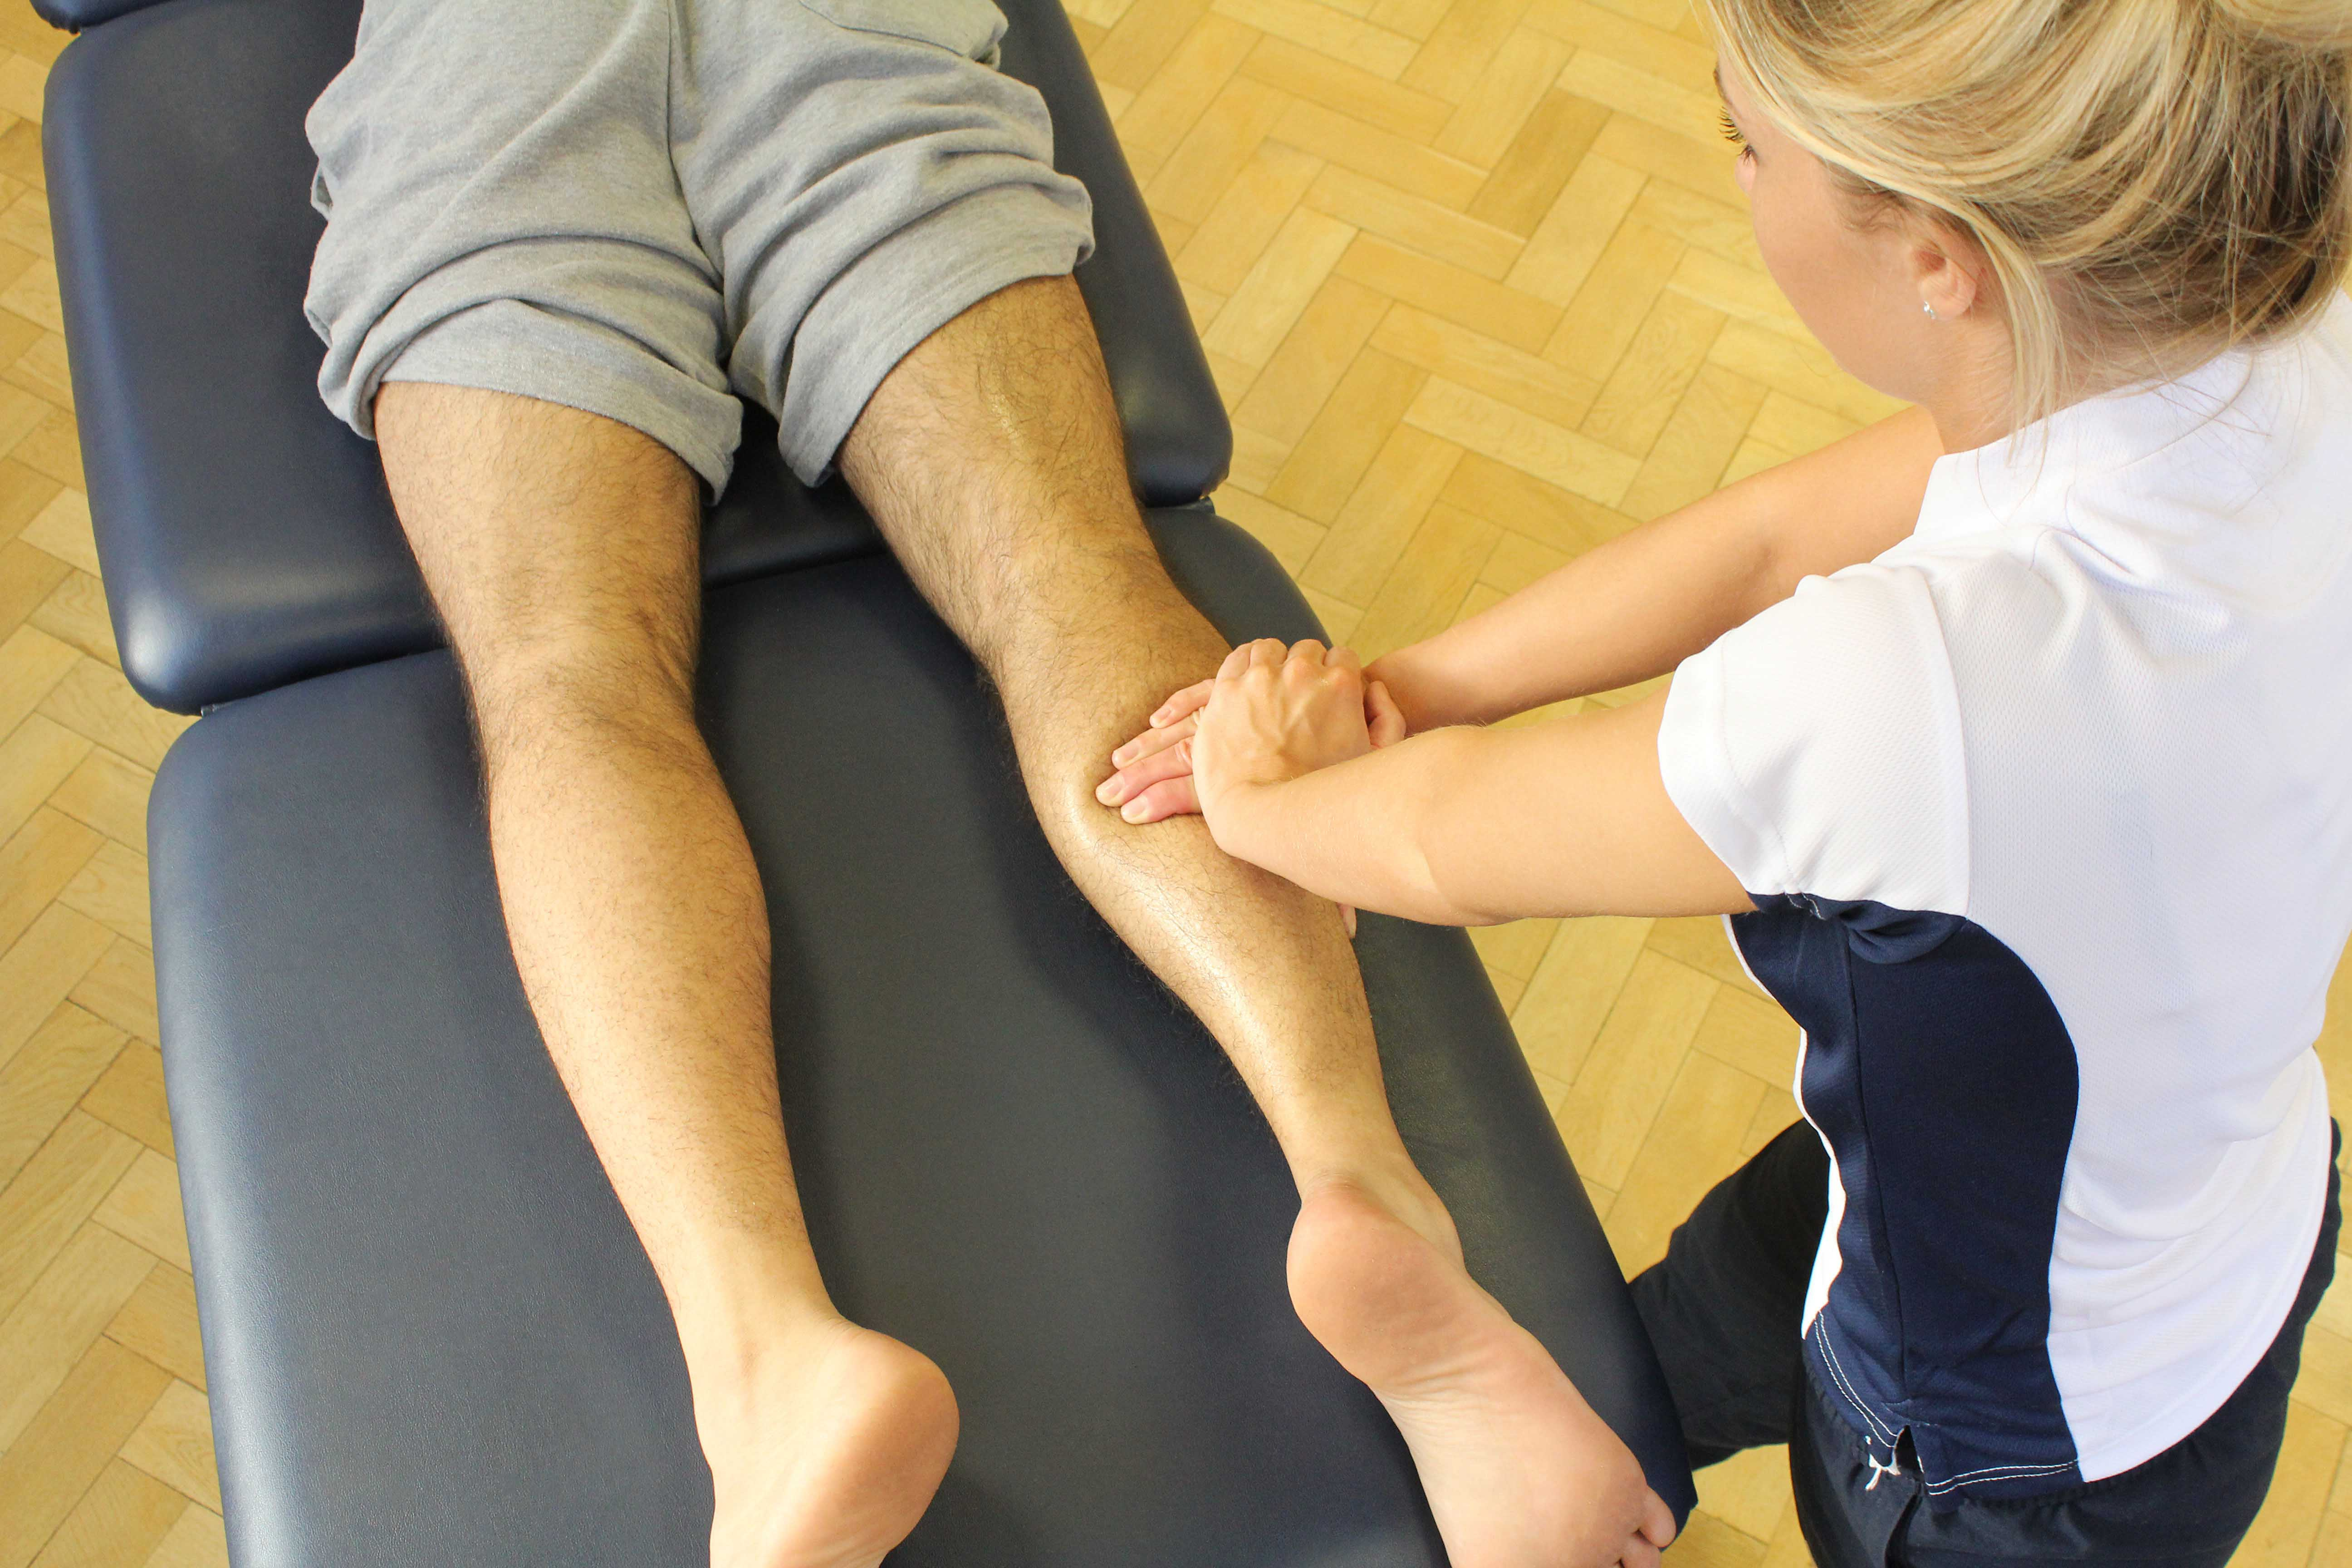 Deep tissue massage of the gastrocnemius muscle to relieve cramps and aching